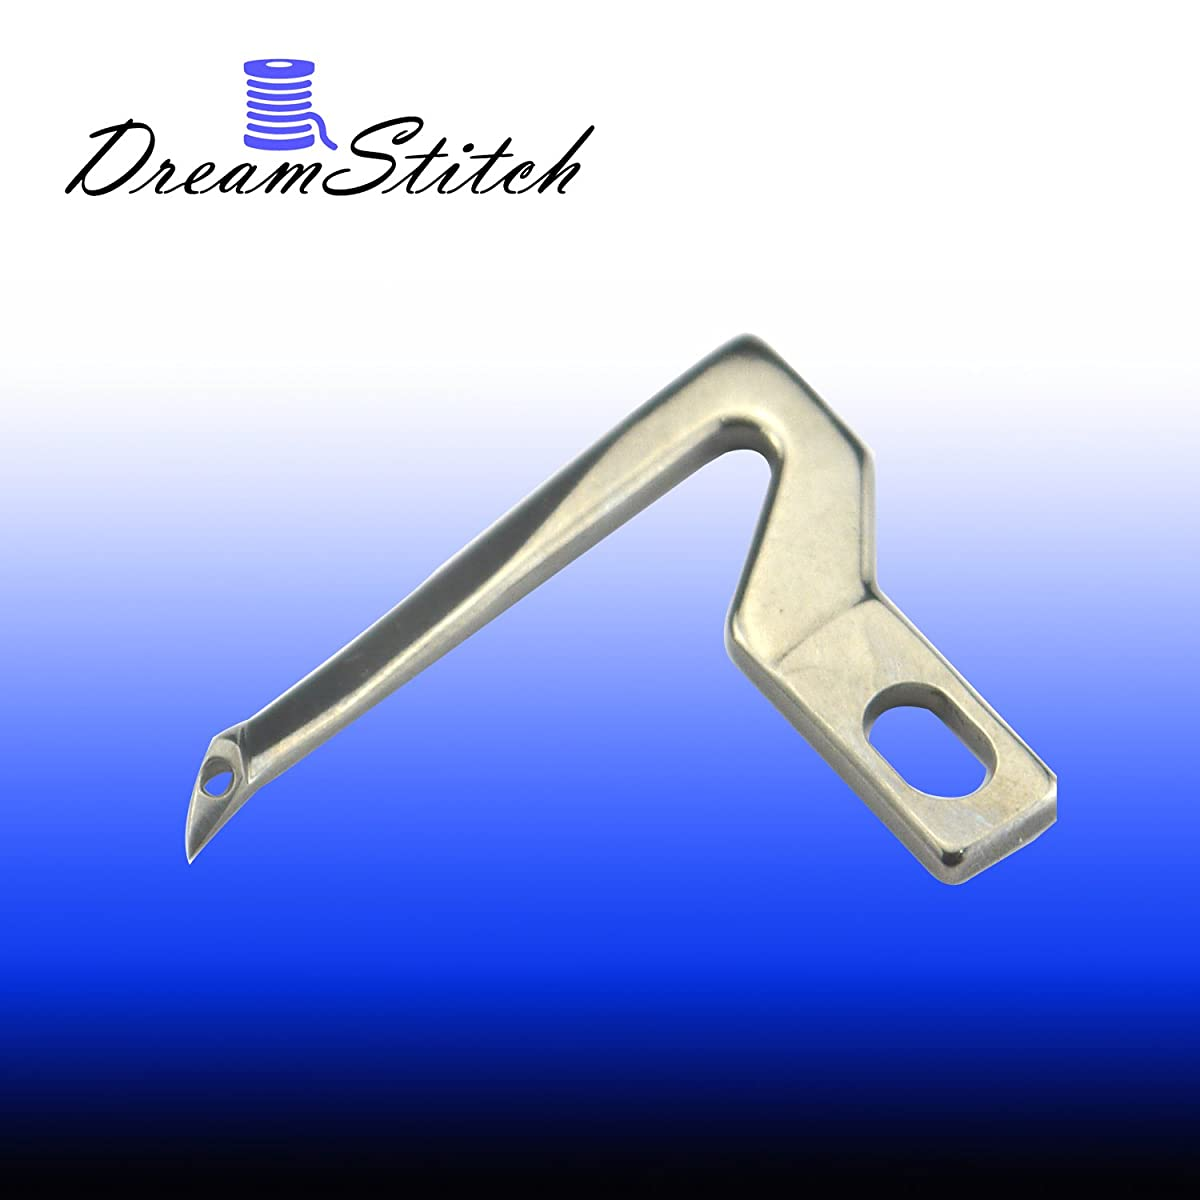 DREAMSTITCH Lower Looper OEM Quality 784083008 for Janome,Kenmore Serger,Pfaff Serger,White Serger,Alt:98-784083-60/000,784083606#784083008